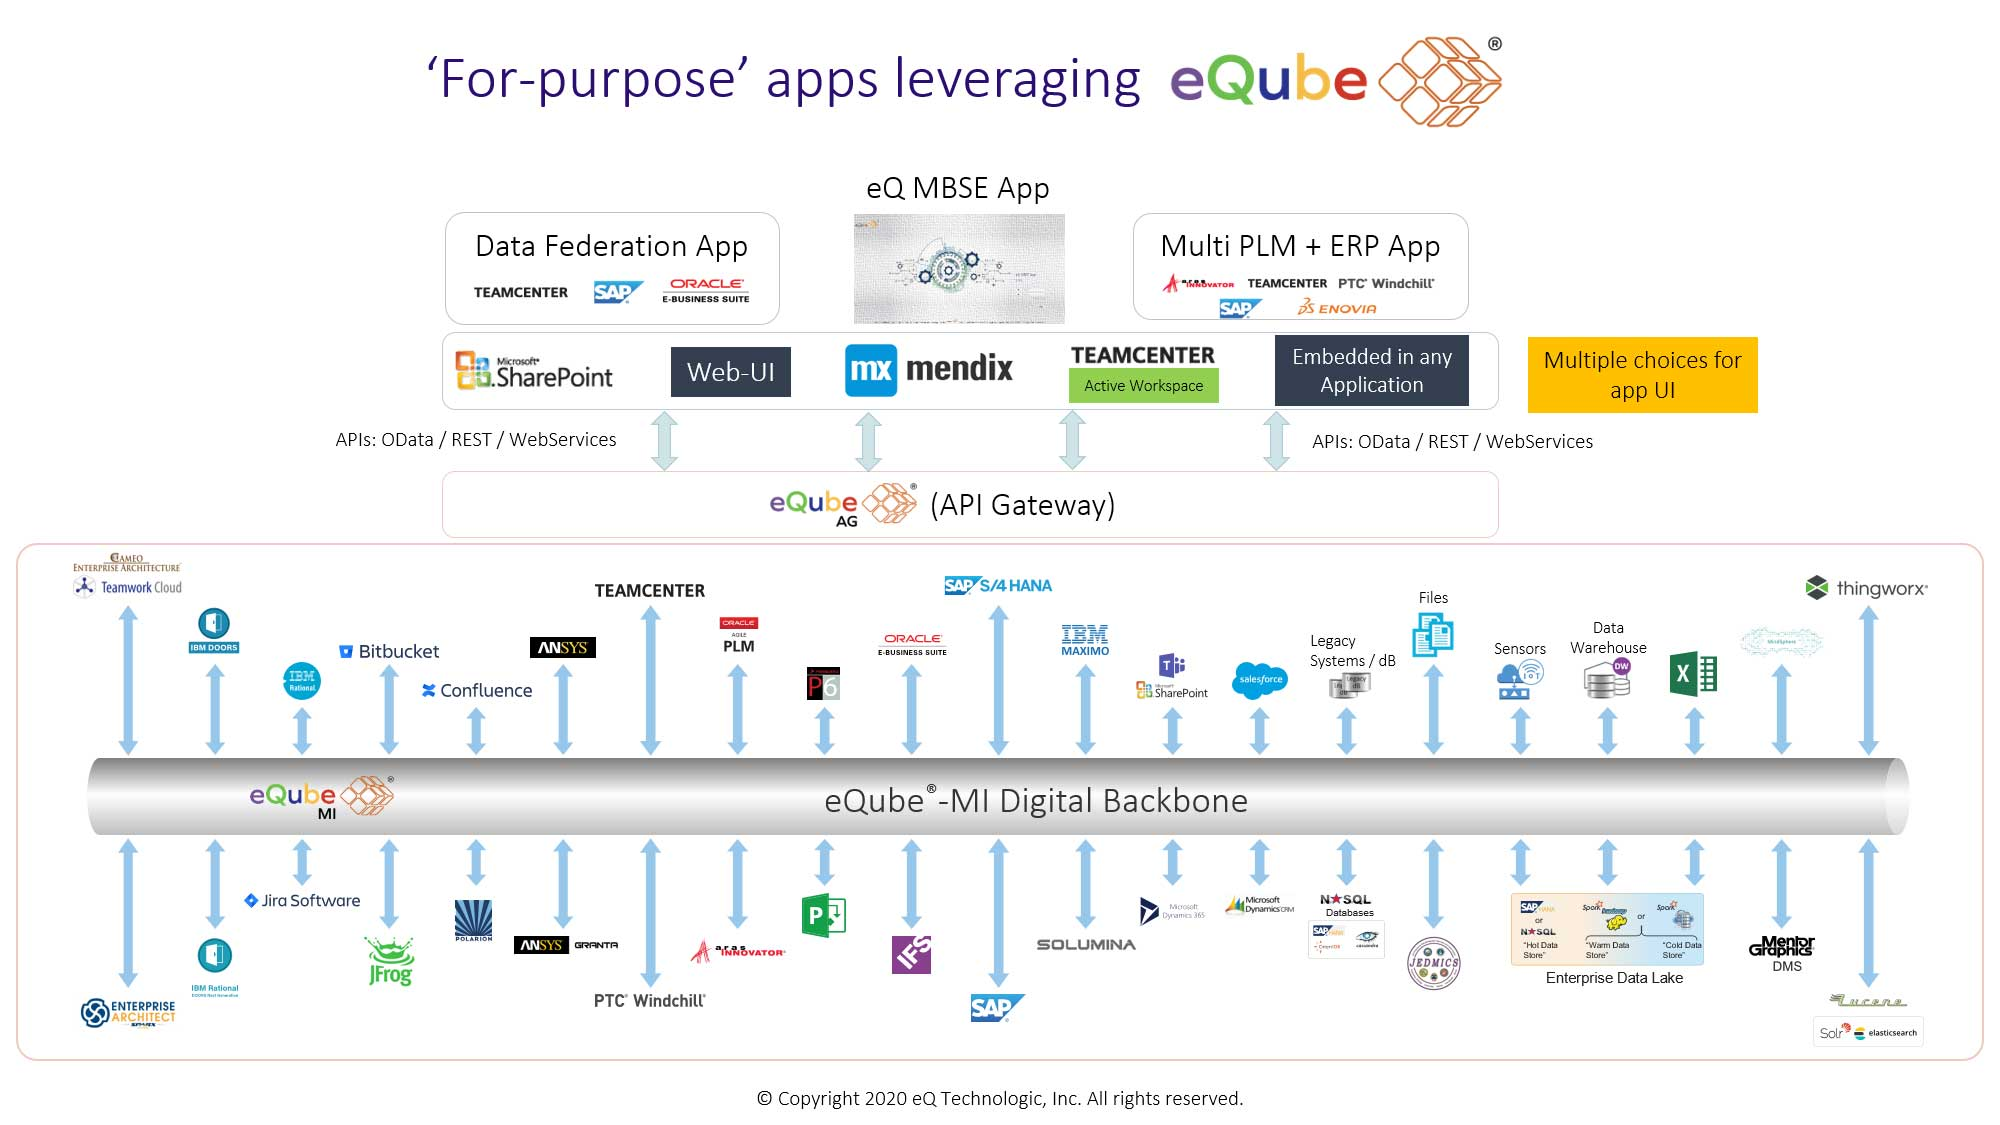 For Purpose Apps Leveraging eQube Platform